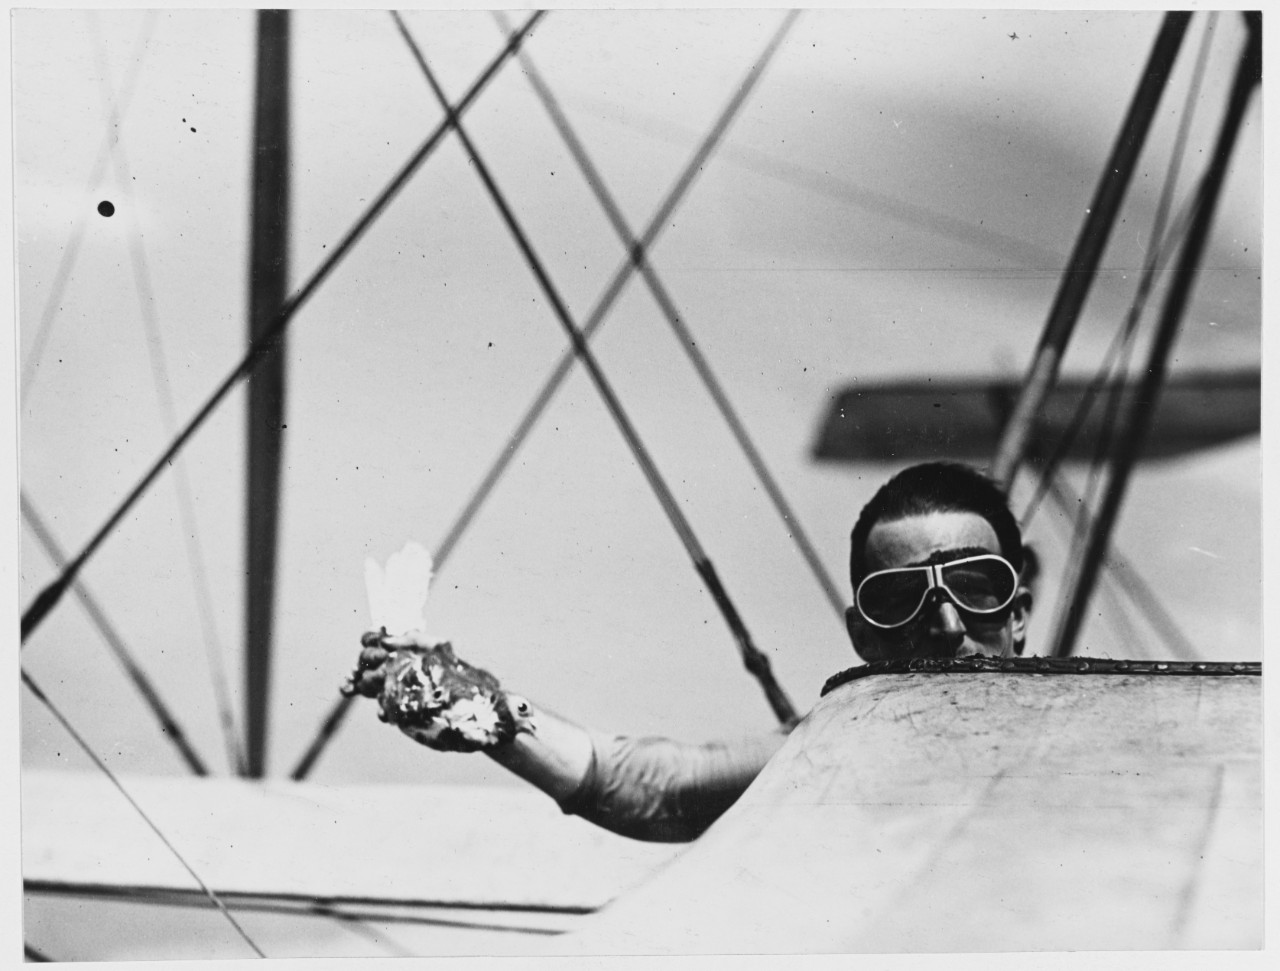 Letting carrier pigeon free from airplane, U.S. Naval Air Station, Anacostia, Washington, D.C.